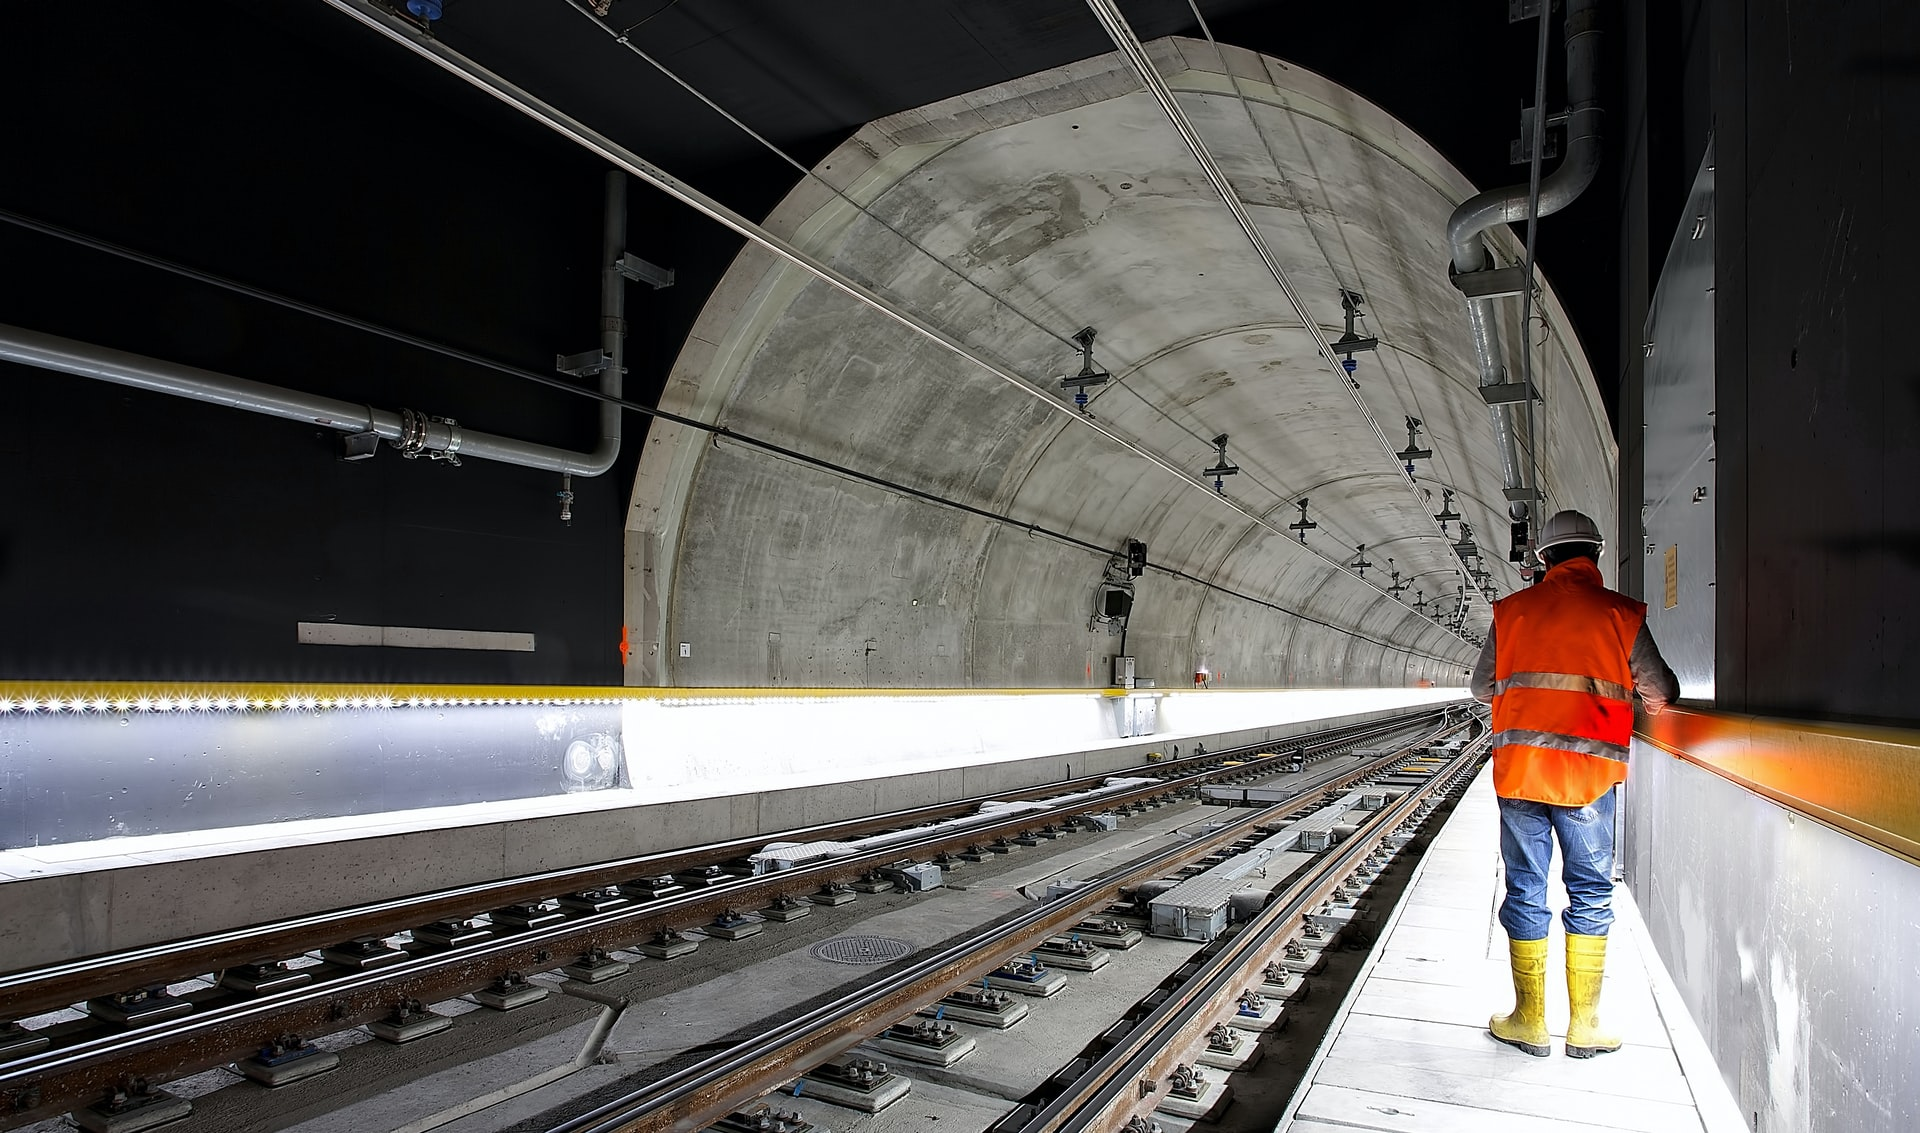 An engineering inspecting a newly-constructed light-rail transit tunnel in Switzerland